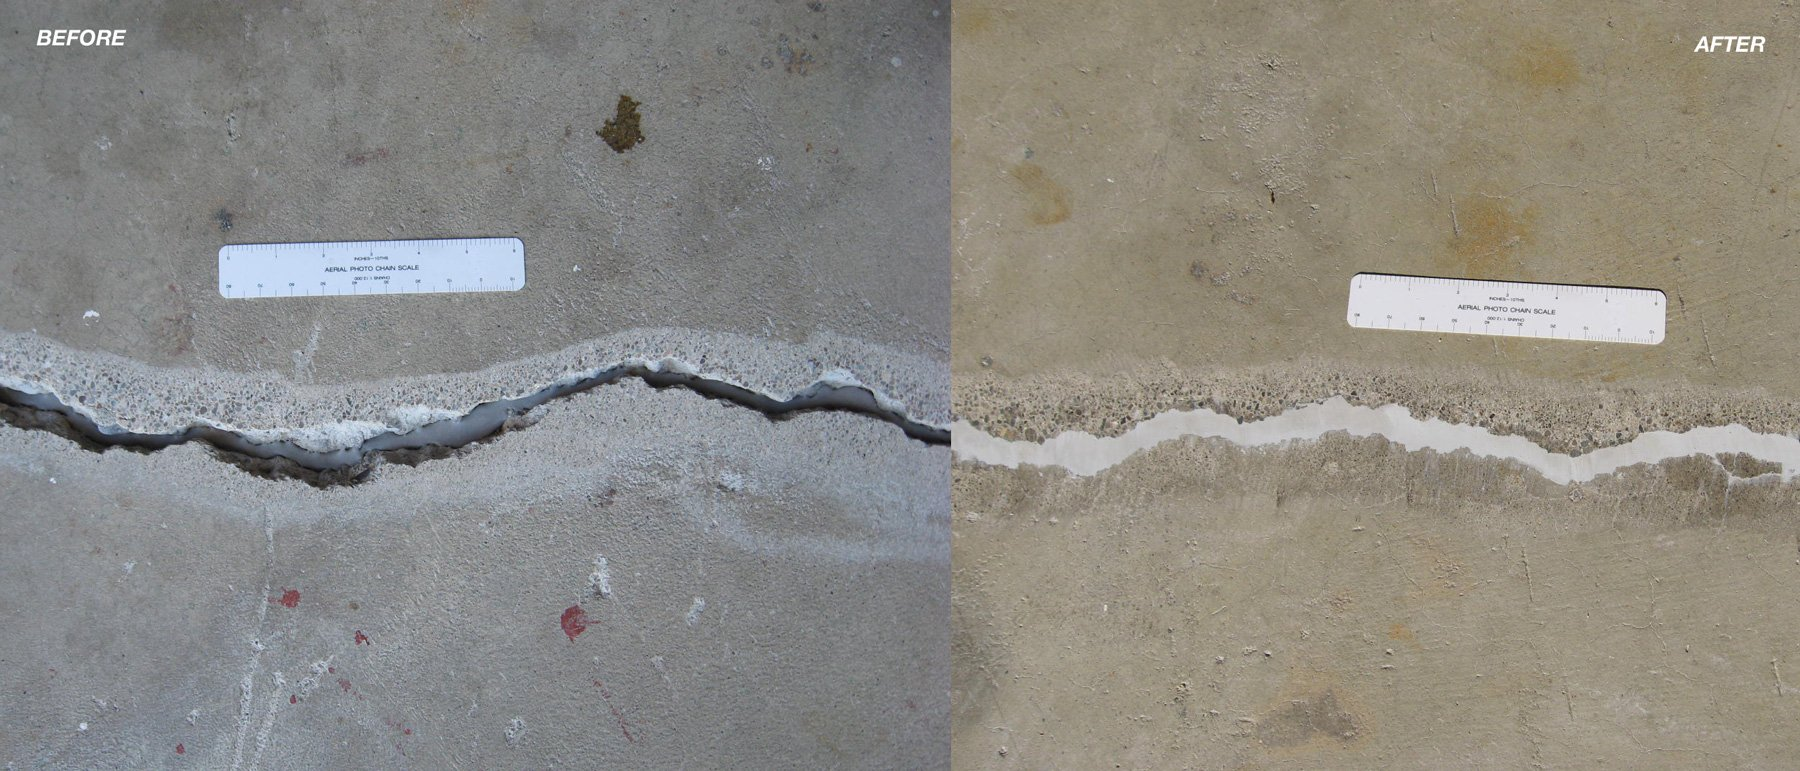 ElastiPoxy Joint & Crack Filler Kit (2-qts.) - Floor-To-Wall Joint Sealant, Cracks in Concrete Blocks, Expansion Joints, Spalled Concrete